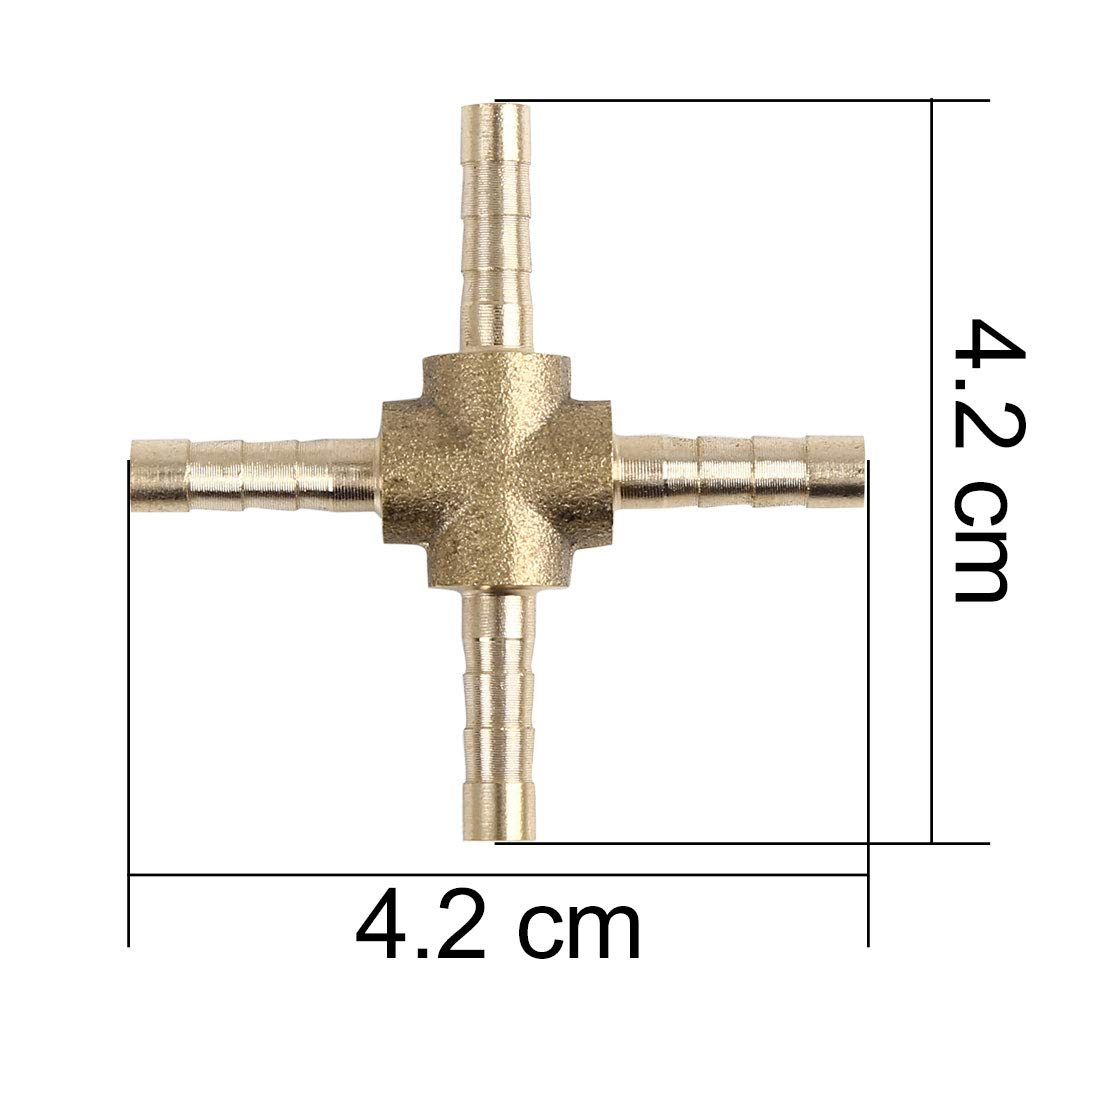 X AUTOHAUX 4mm Brass Hose Barb Fitting Cross 4 Way Connector for Air Water Gas Oil 5pcs